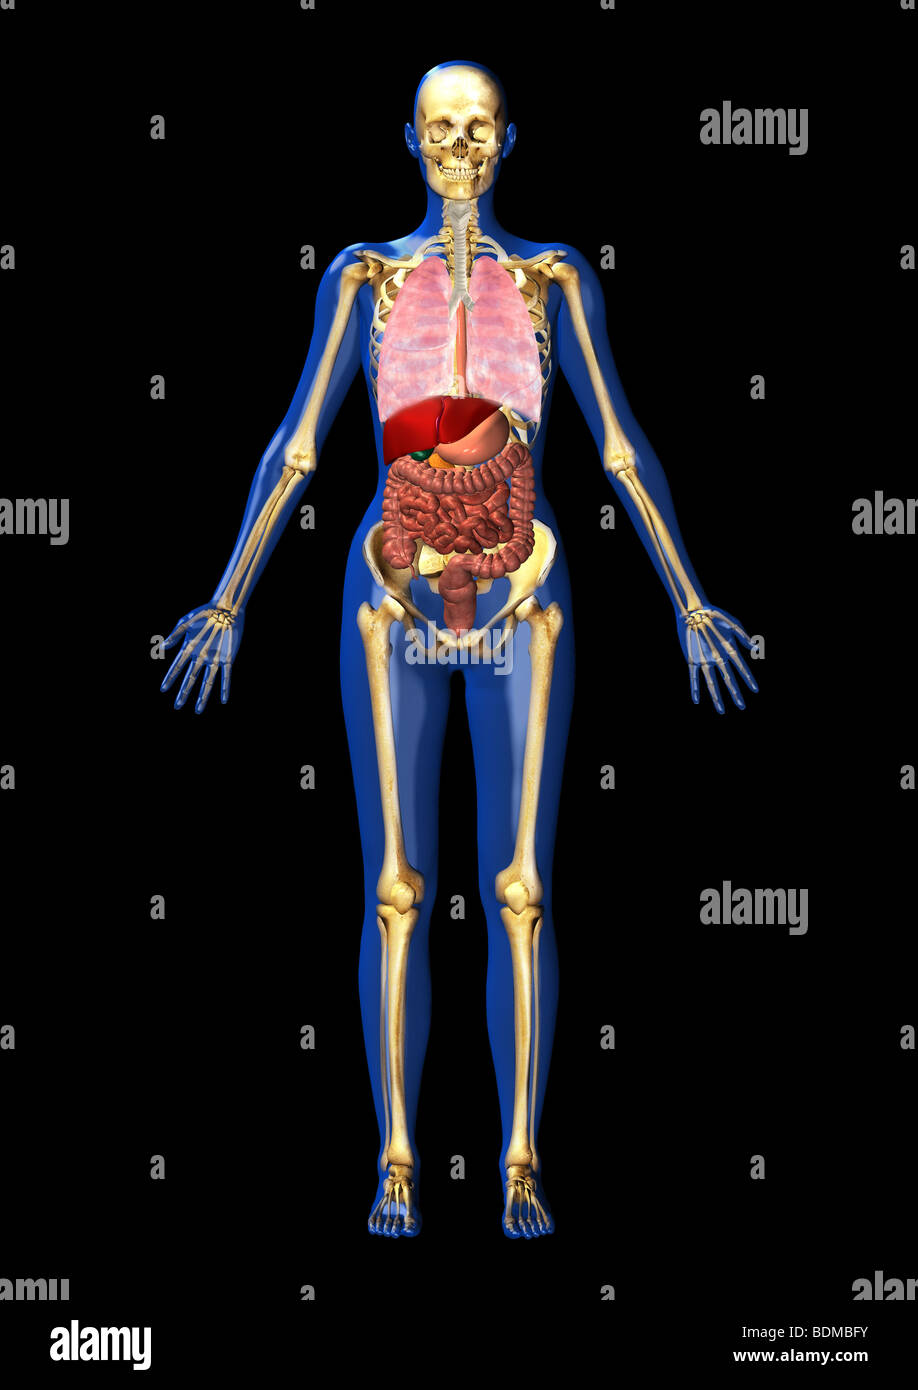 Human anatomy of the lungs stock photos human anatomy of the lungs human anatomical illustration of the lungs and gi system including the liver gallbladder ccuart Image collections